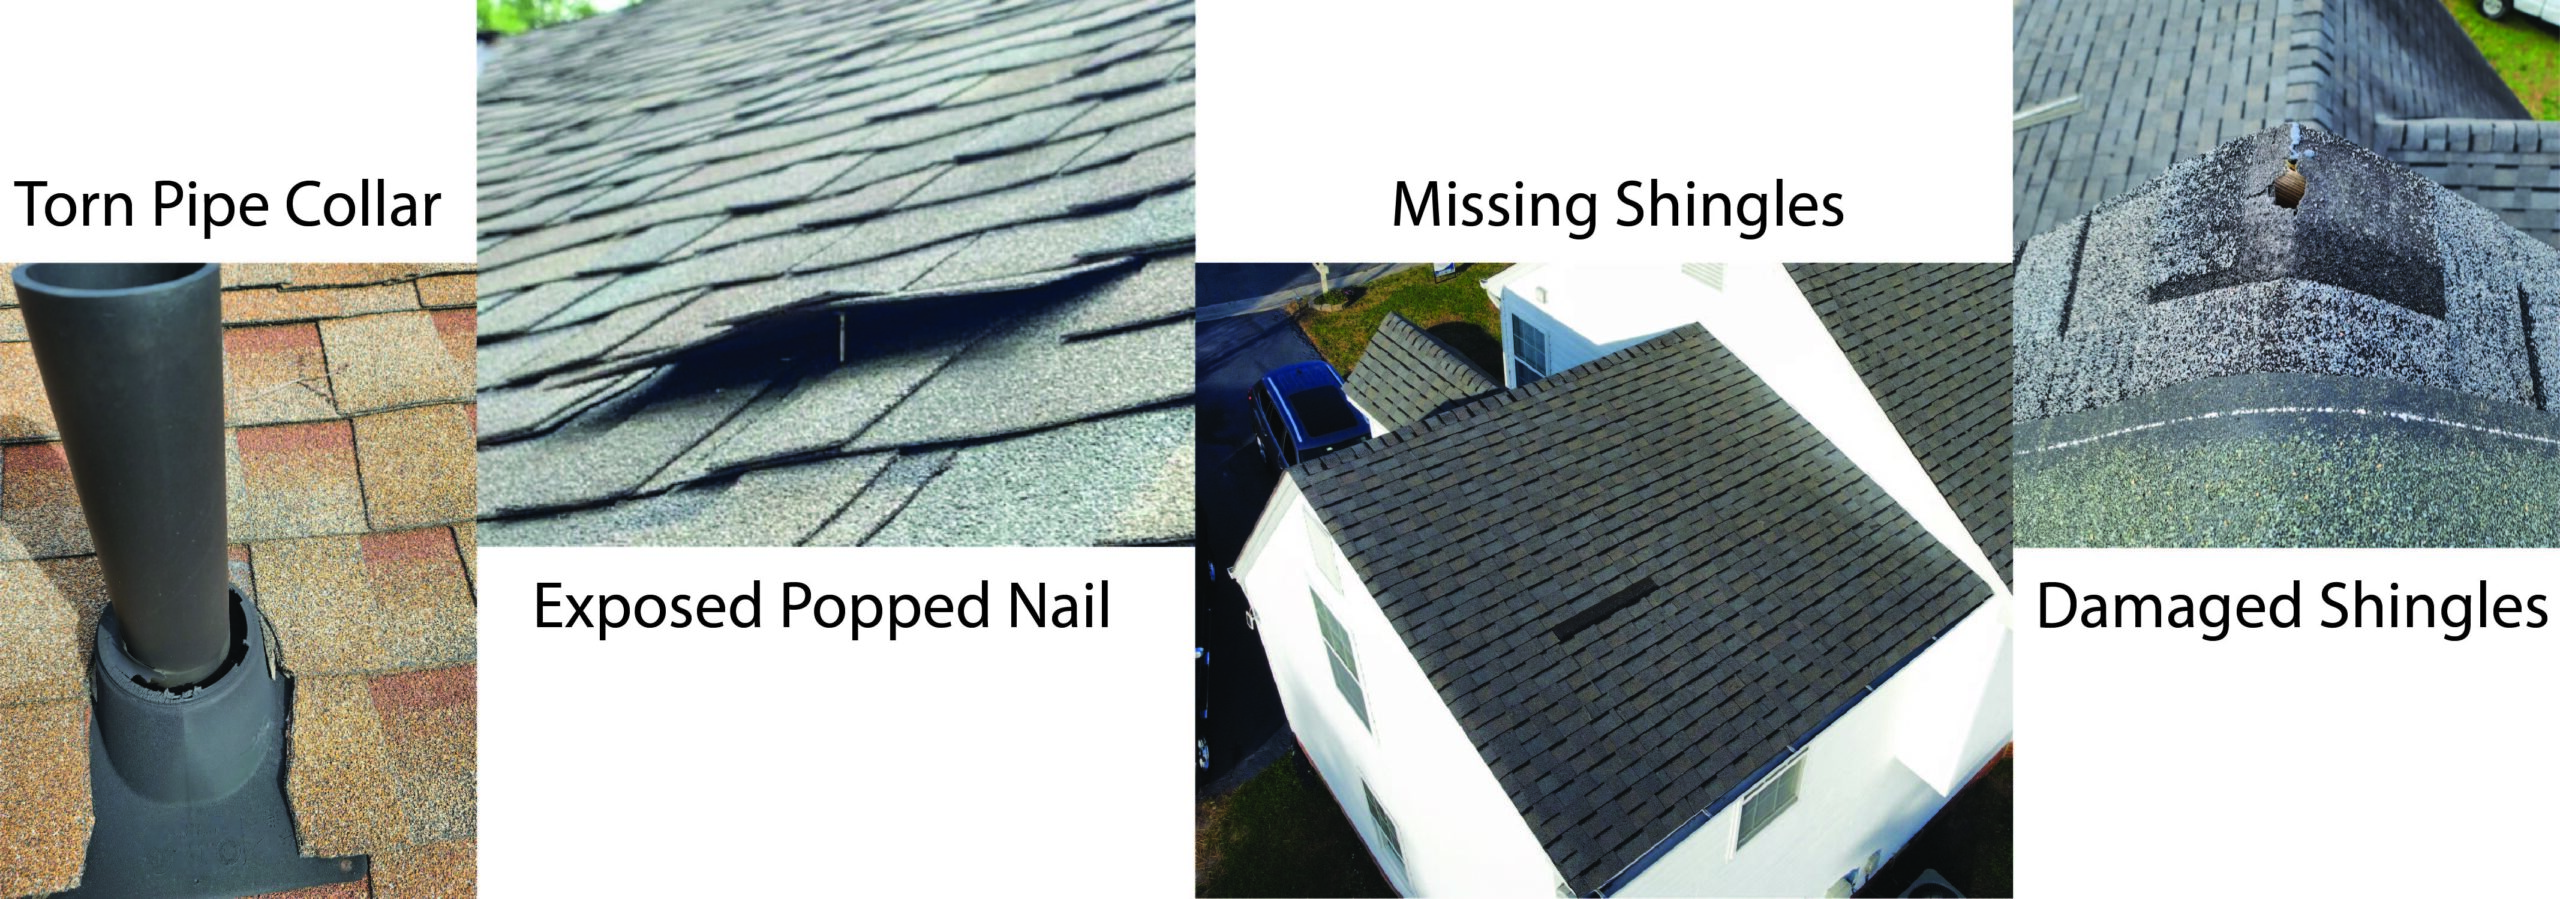 https://secureservercdn.net/198.71.233.138/lze.1ce.myftpupload.com/wp-content/uploads/Common-Roof-Repairs-scaled.jpg?time=1631594801